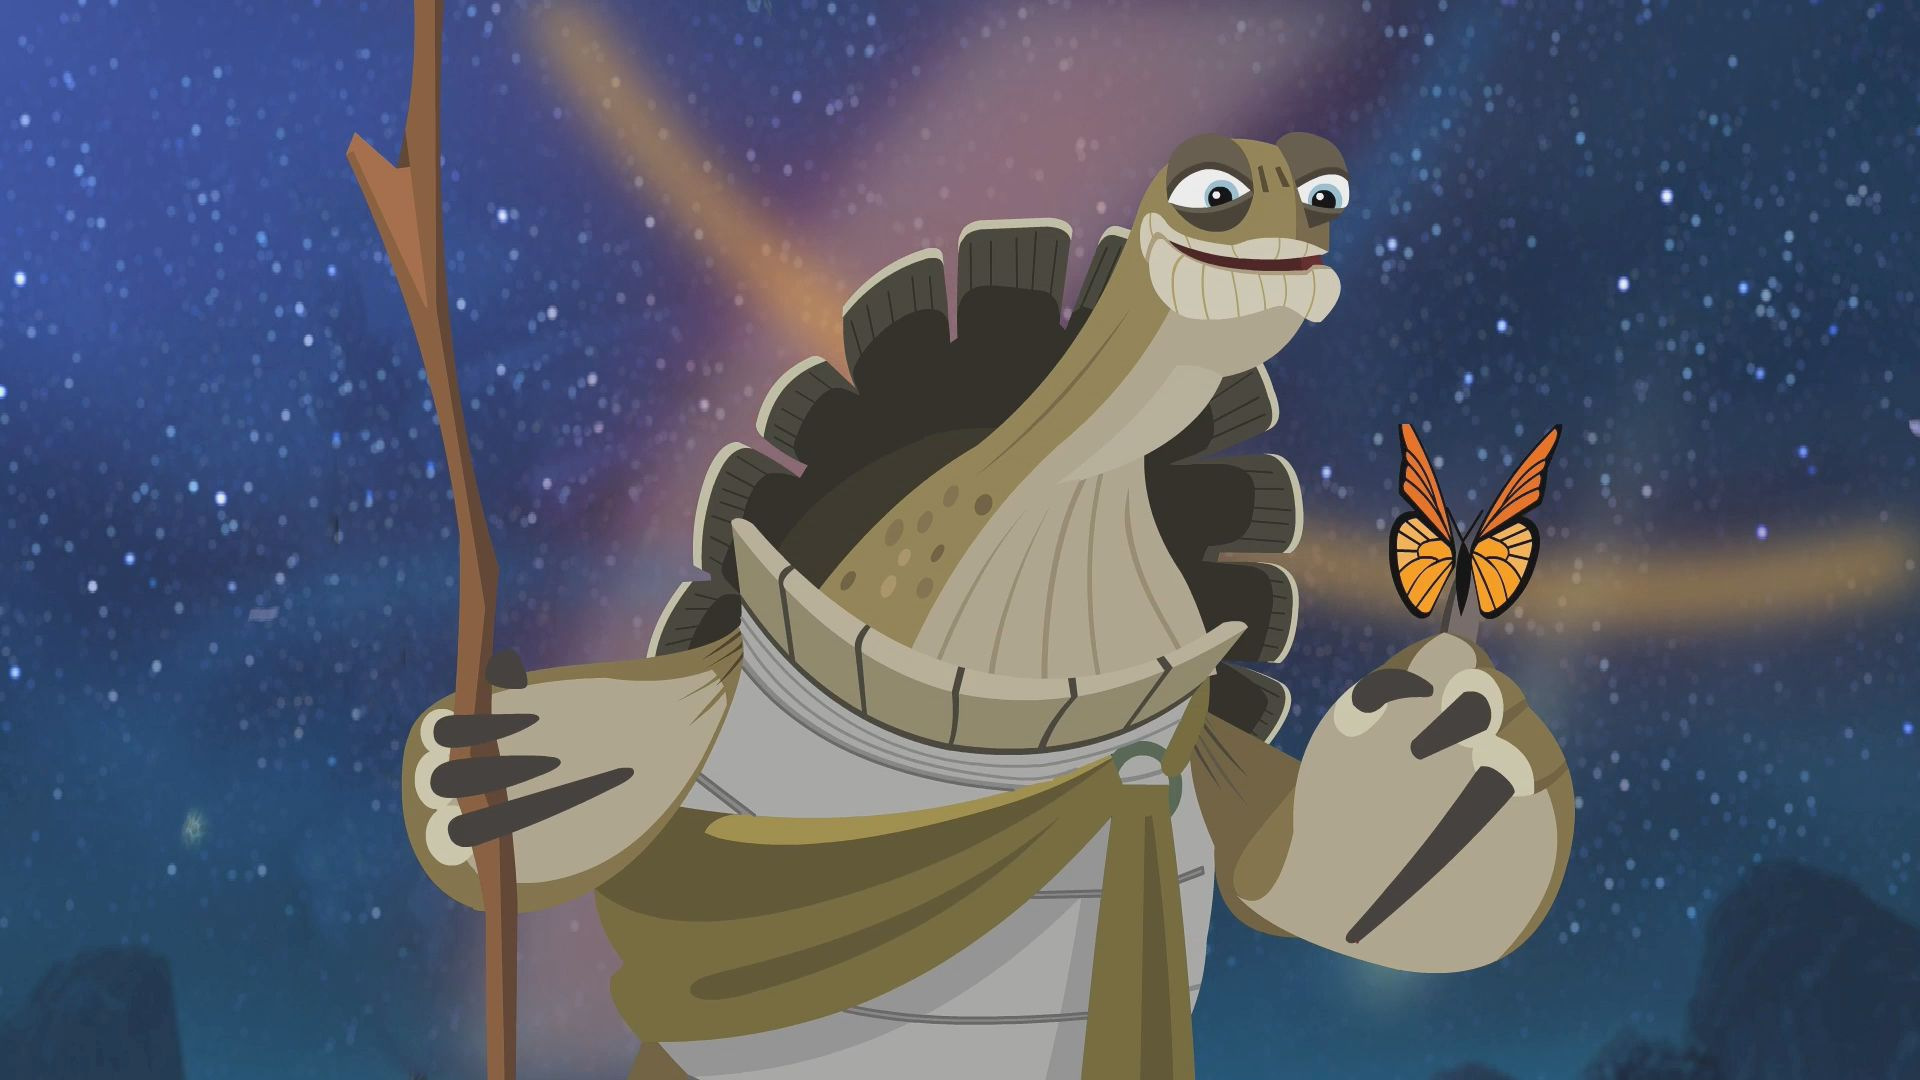 Master Oogway and the butterfly | Kung fu panda, Kung fu ...